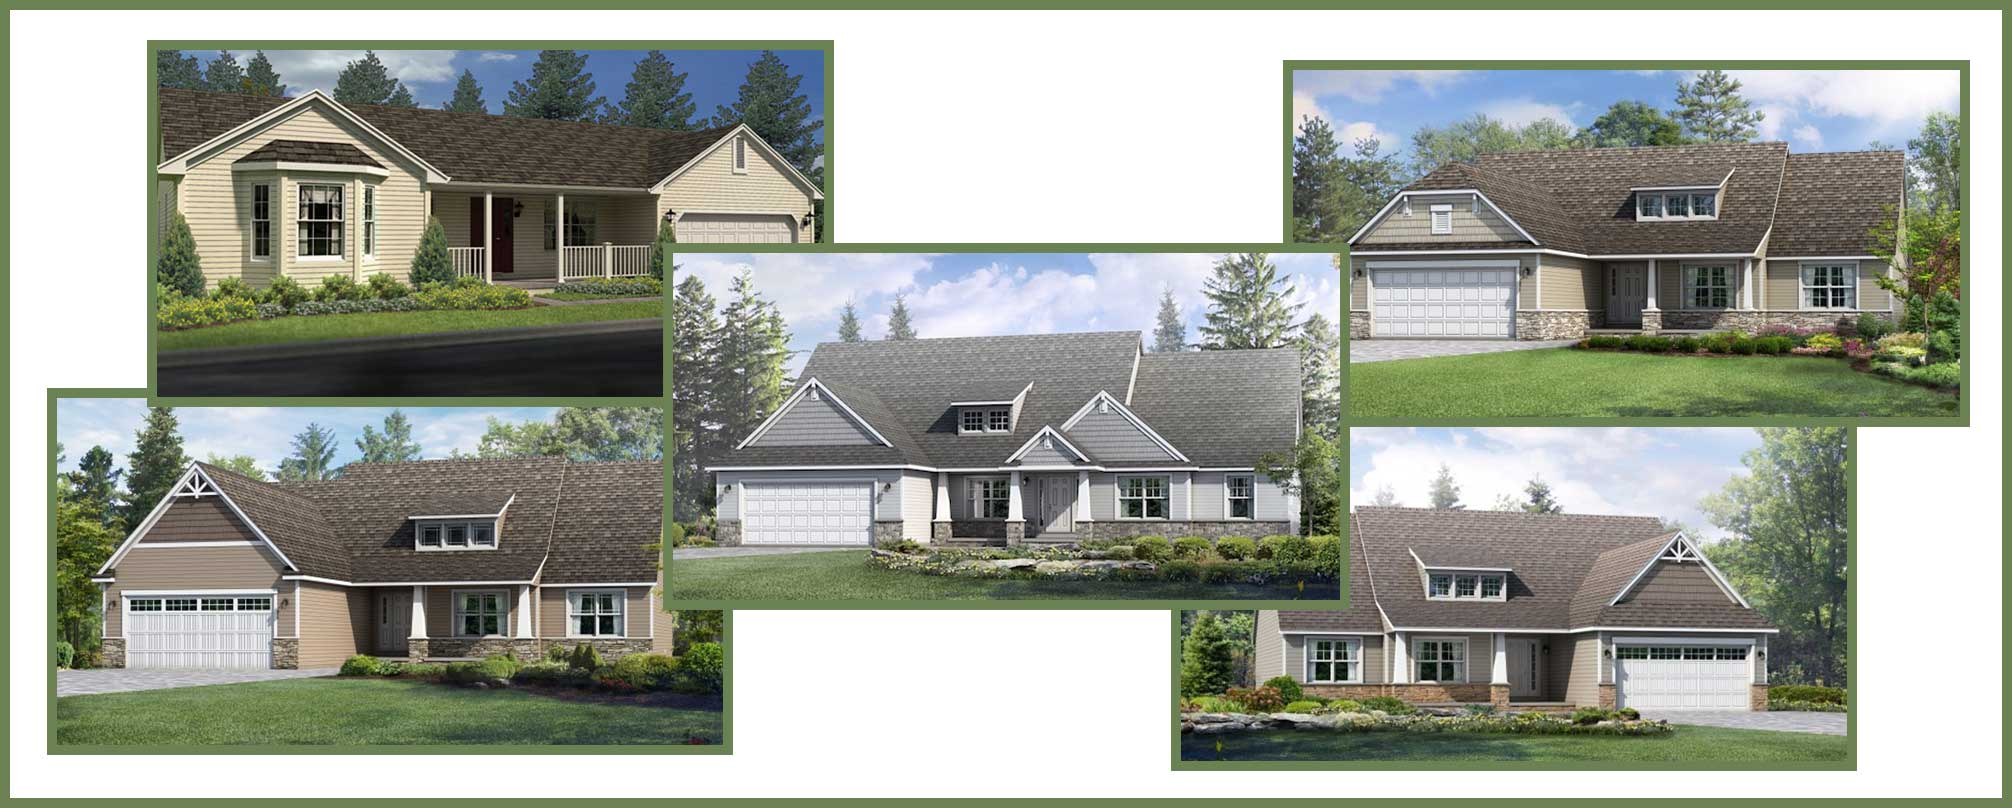 Our top-rated ranch style floorplans - Wayne Homes on studio apartment floor plans free, townhouse floor plans free, ranch house blueprints free, ranch home layouts, country ranch house plans free, small house floor plans free, ranch home plans with open floor plans,